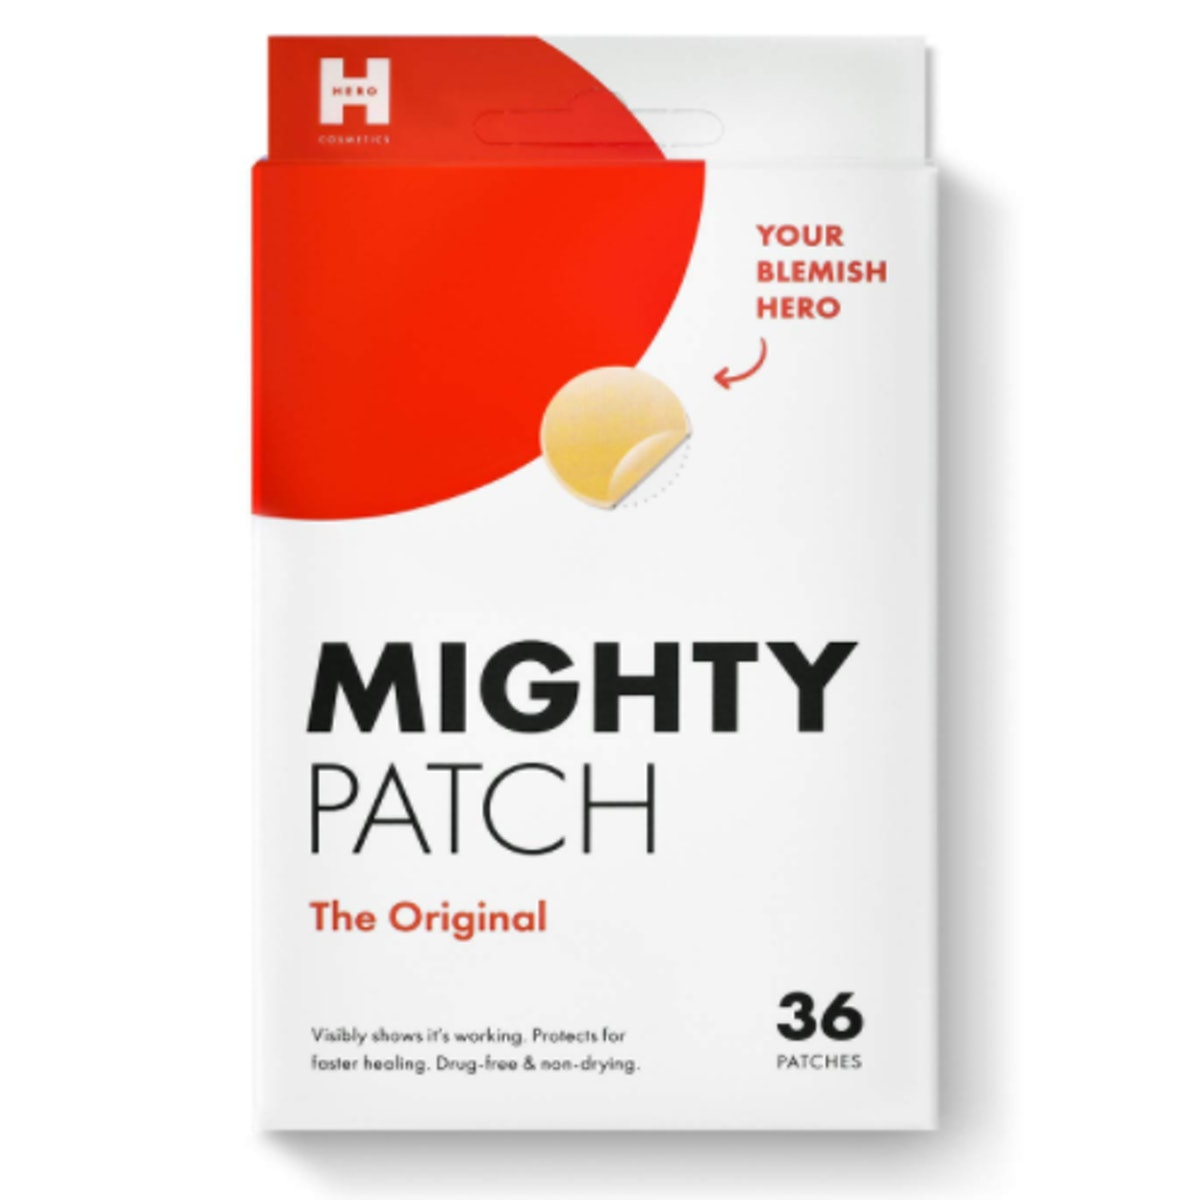 Mighty Patch The Original Pimple Patch